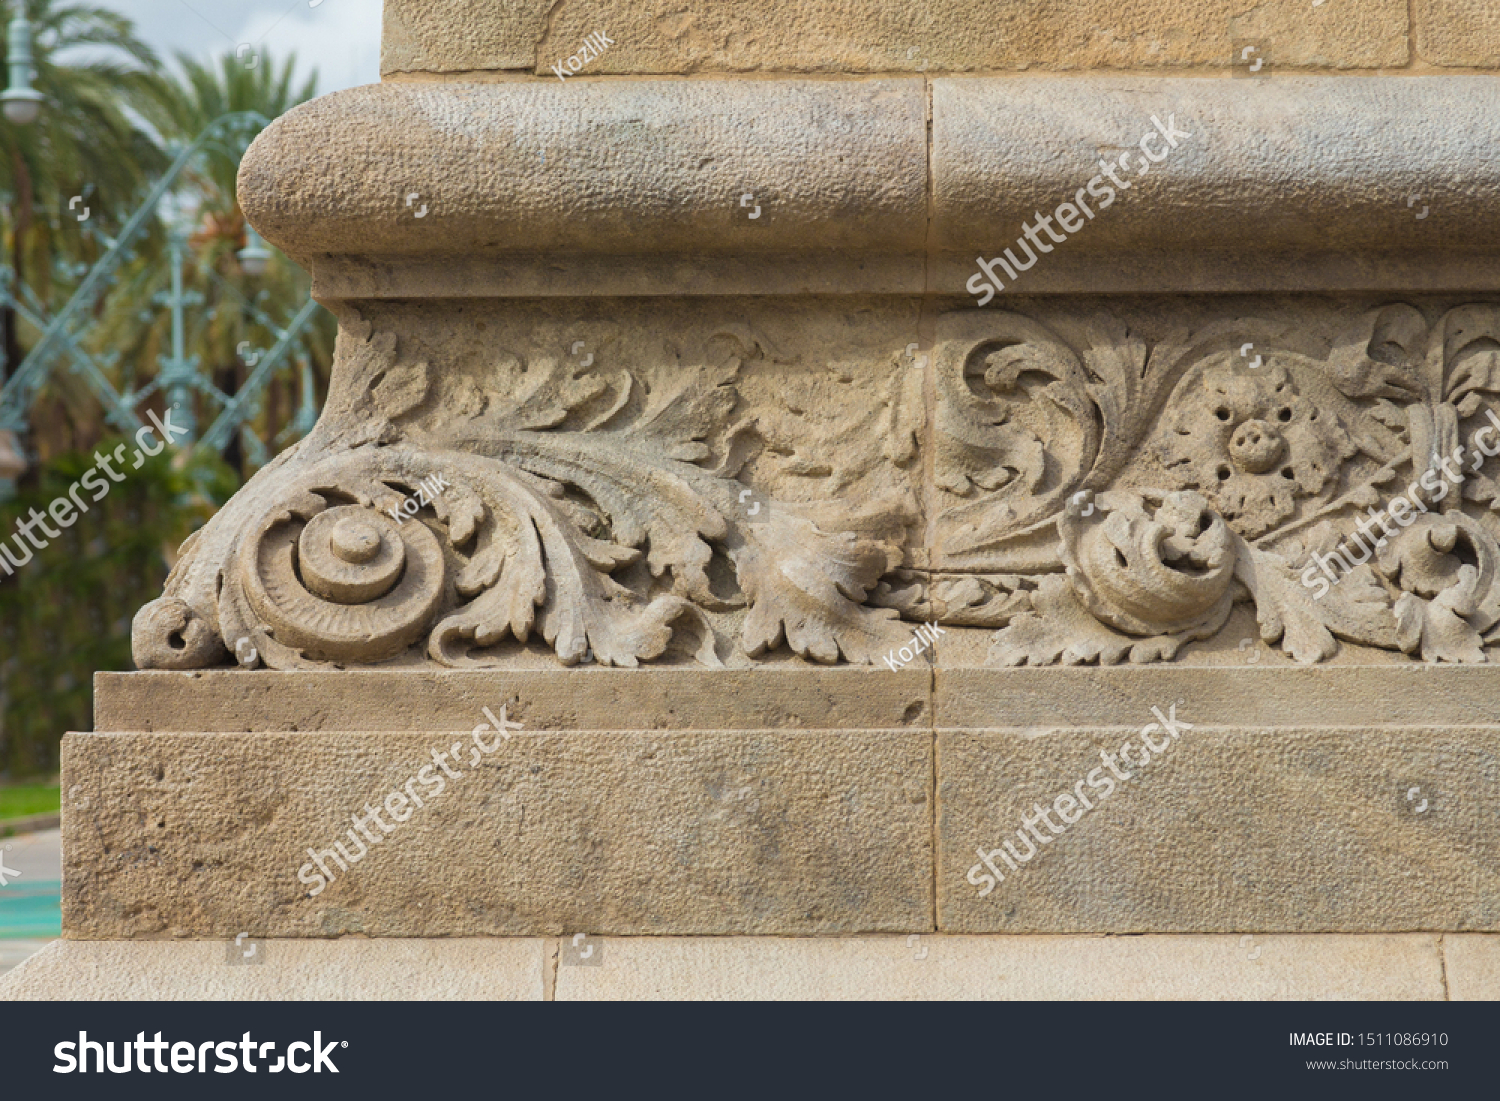 Elements of architectural decoration of buildings, stucco moldings, stucco wall texture, patterns and statues. On the streets in Catalonia, public places. #1511086910